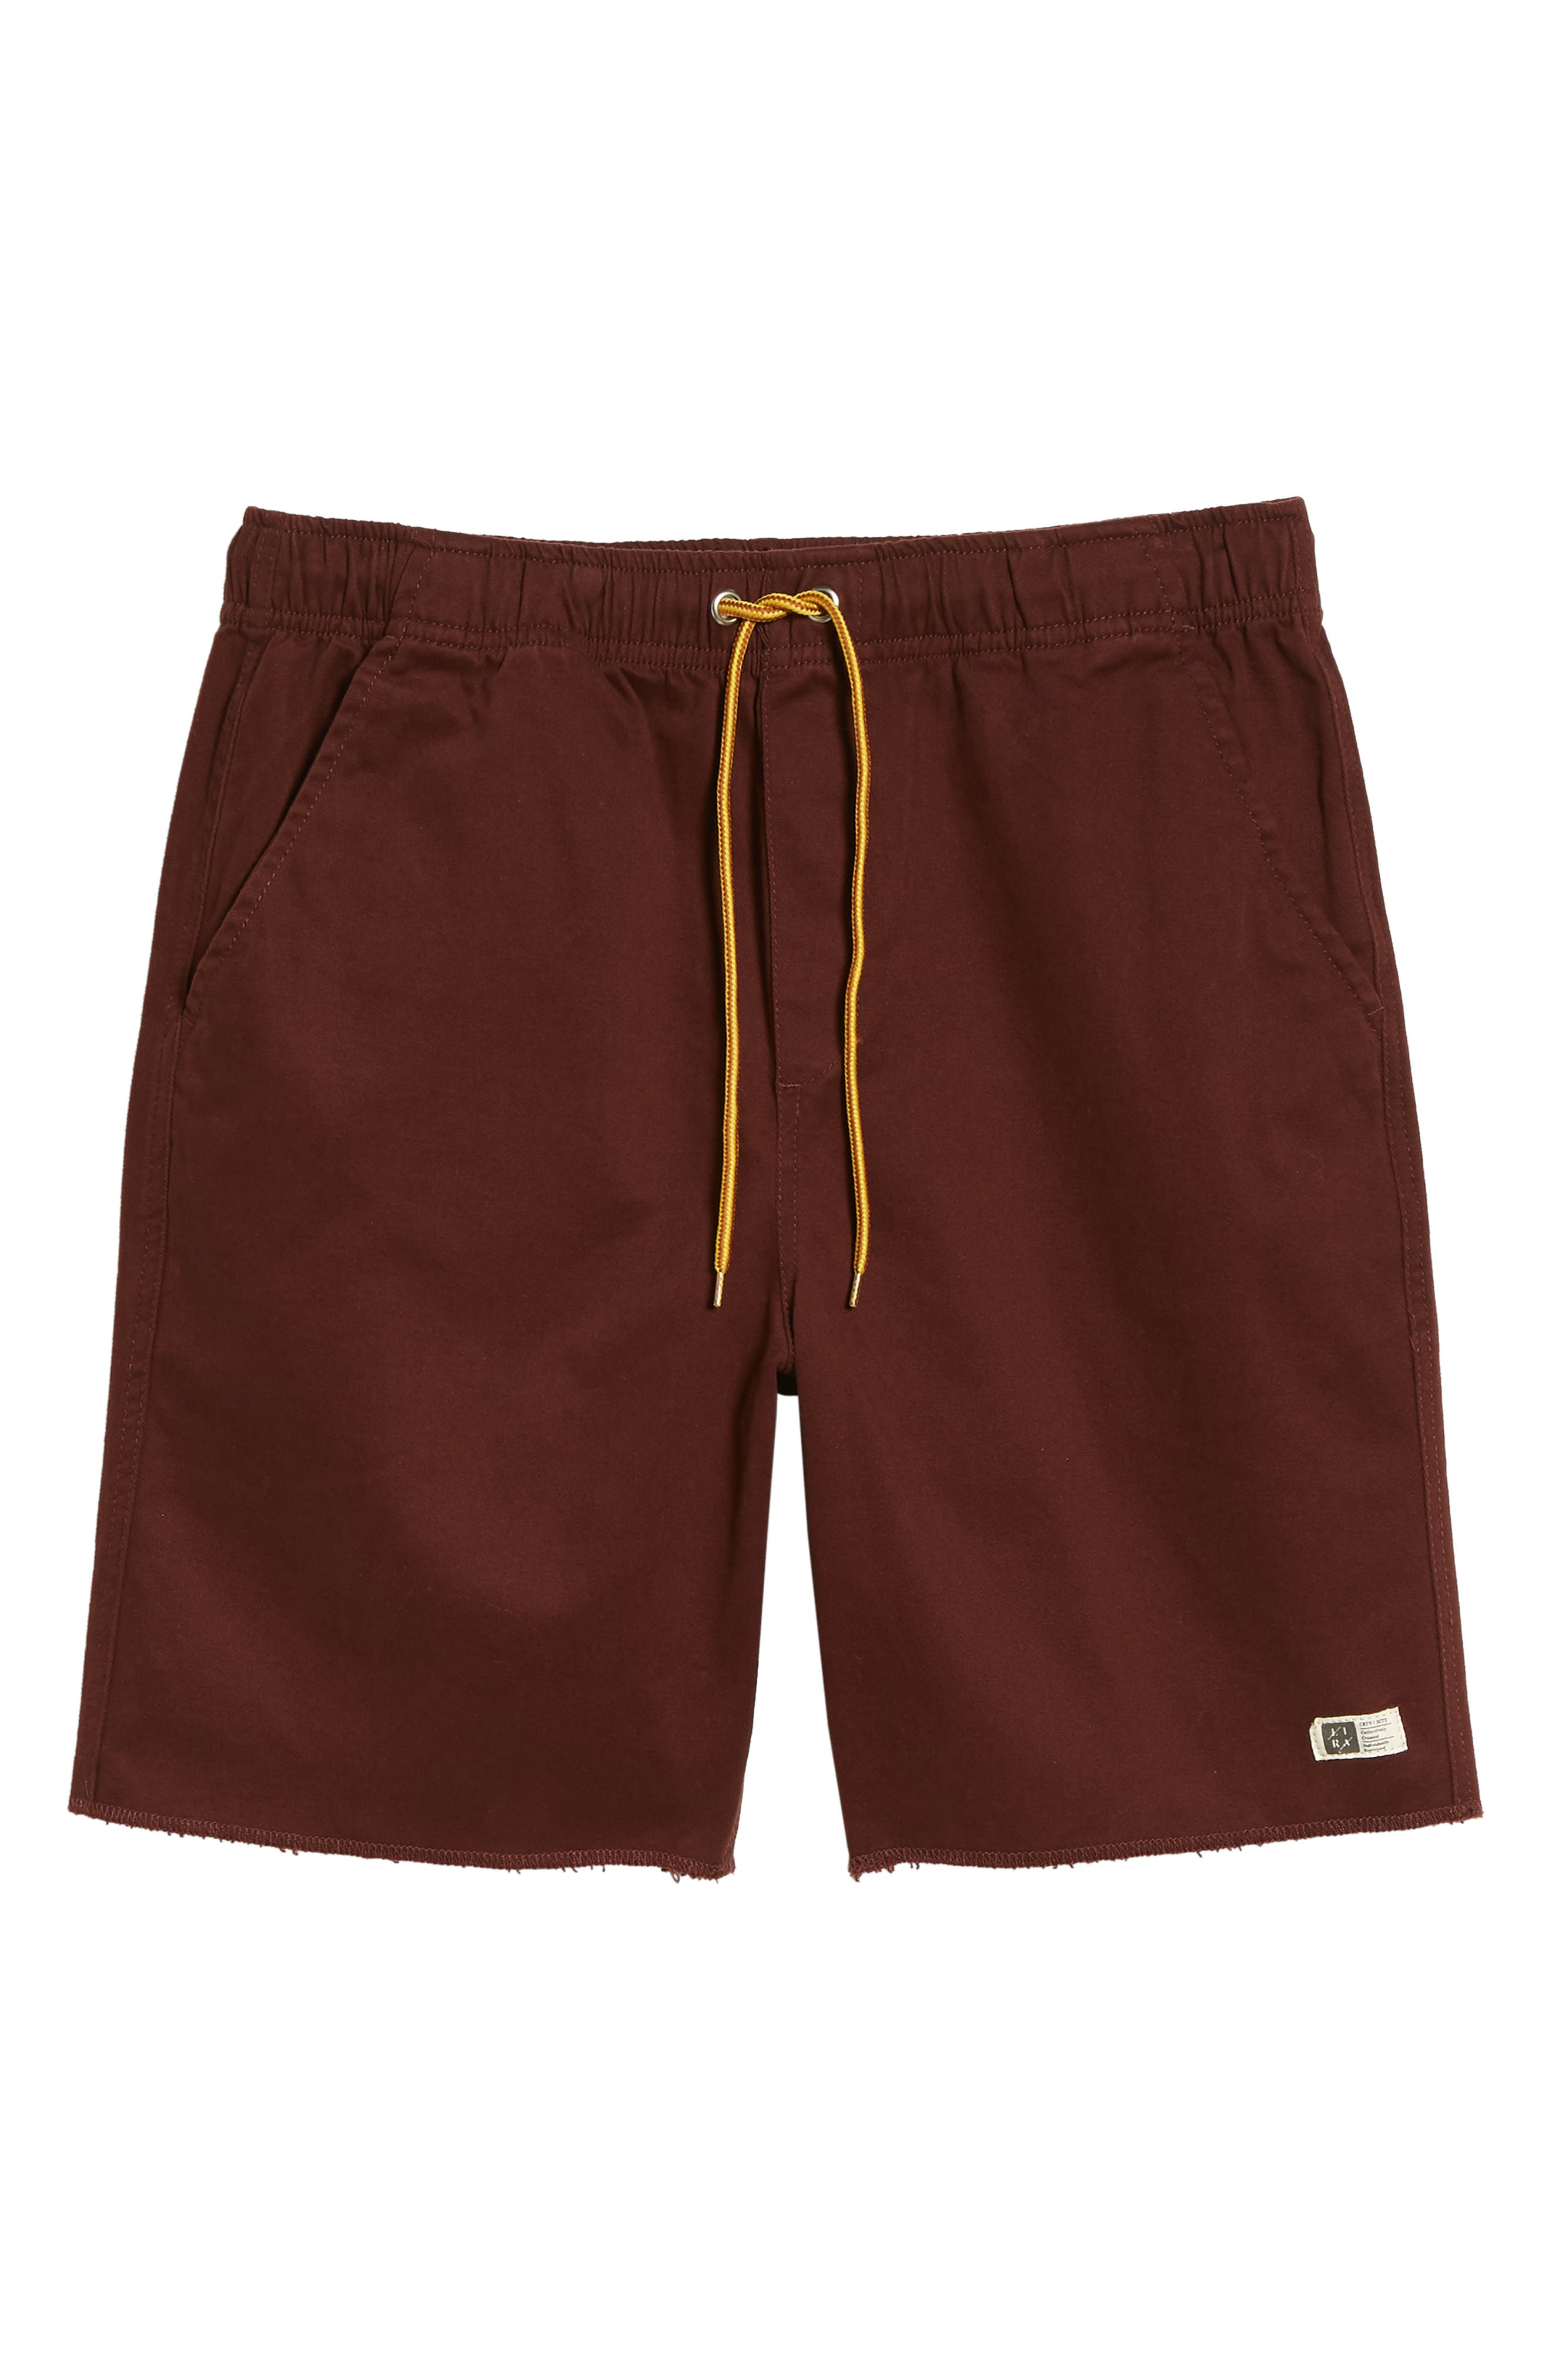 Weekday Shorts,                             Alternate thumbnail 6, color,                             Burgundy